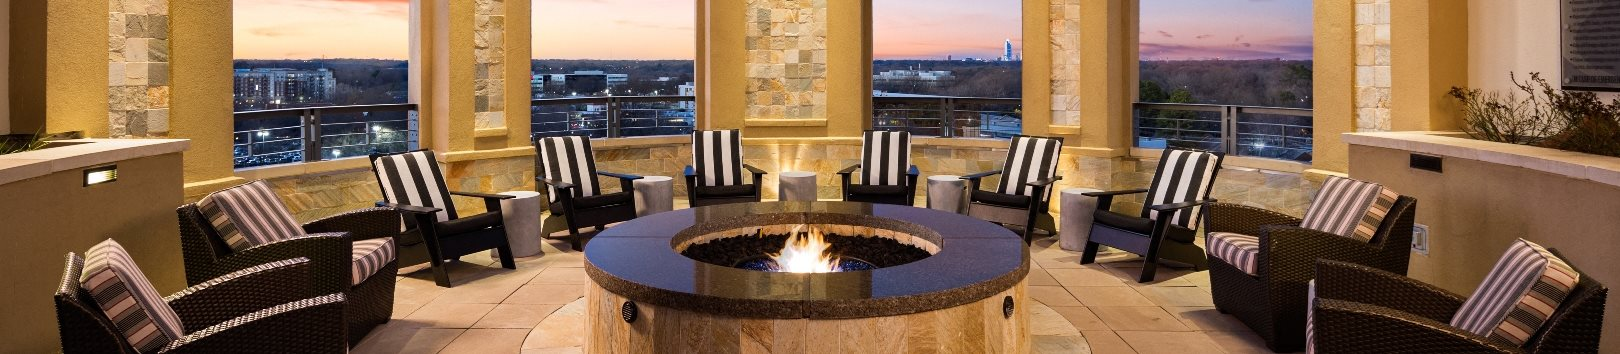 Beautiful Views at The Residence at South Park Apartments in Charlotte, North Carolina